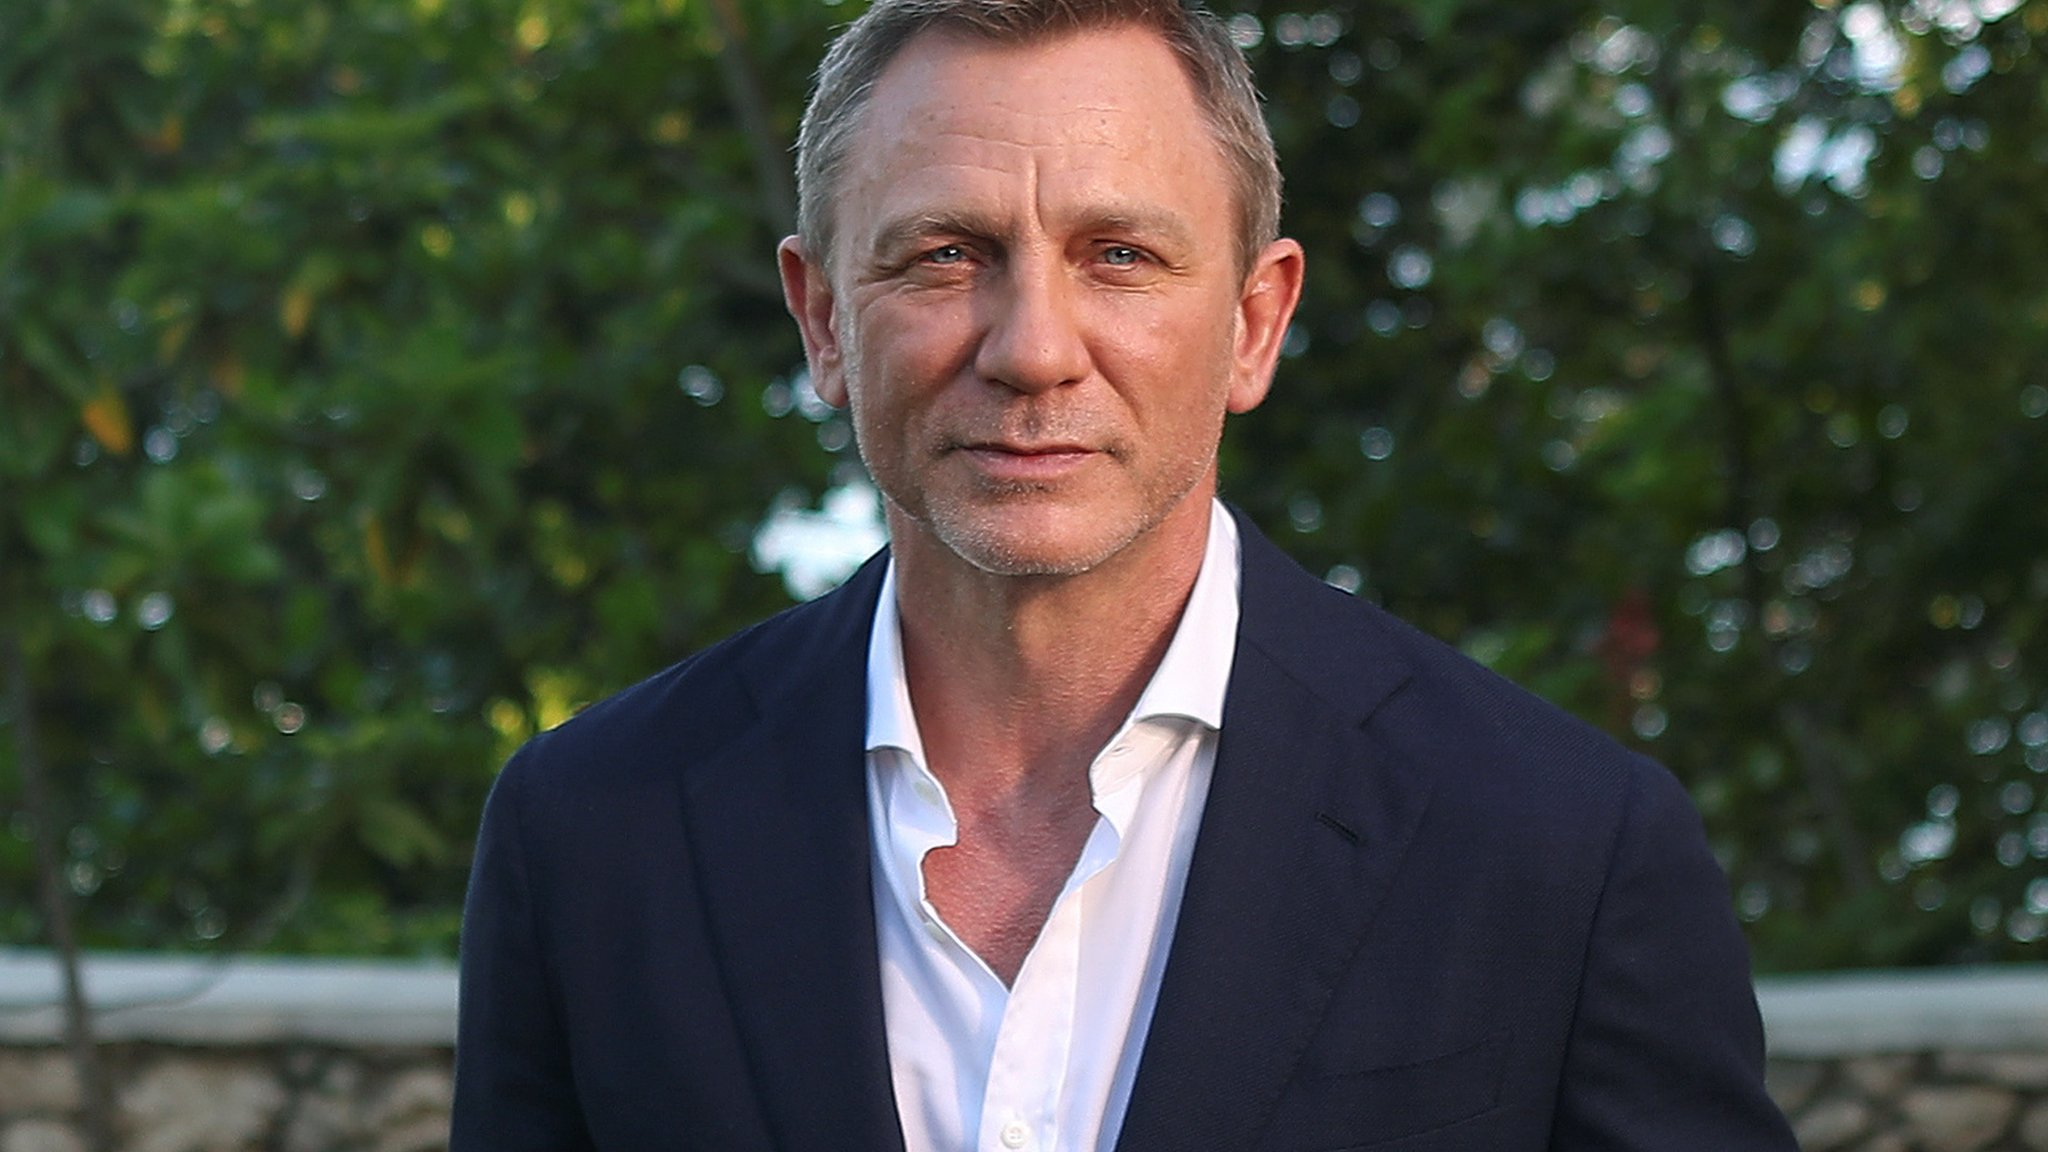 Daniel Craig to undergo ankle surgery following Bond injury